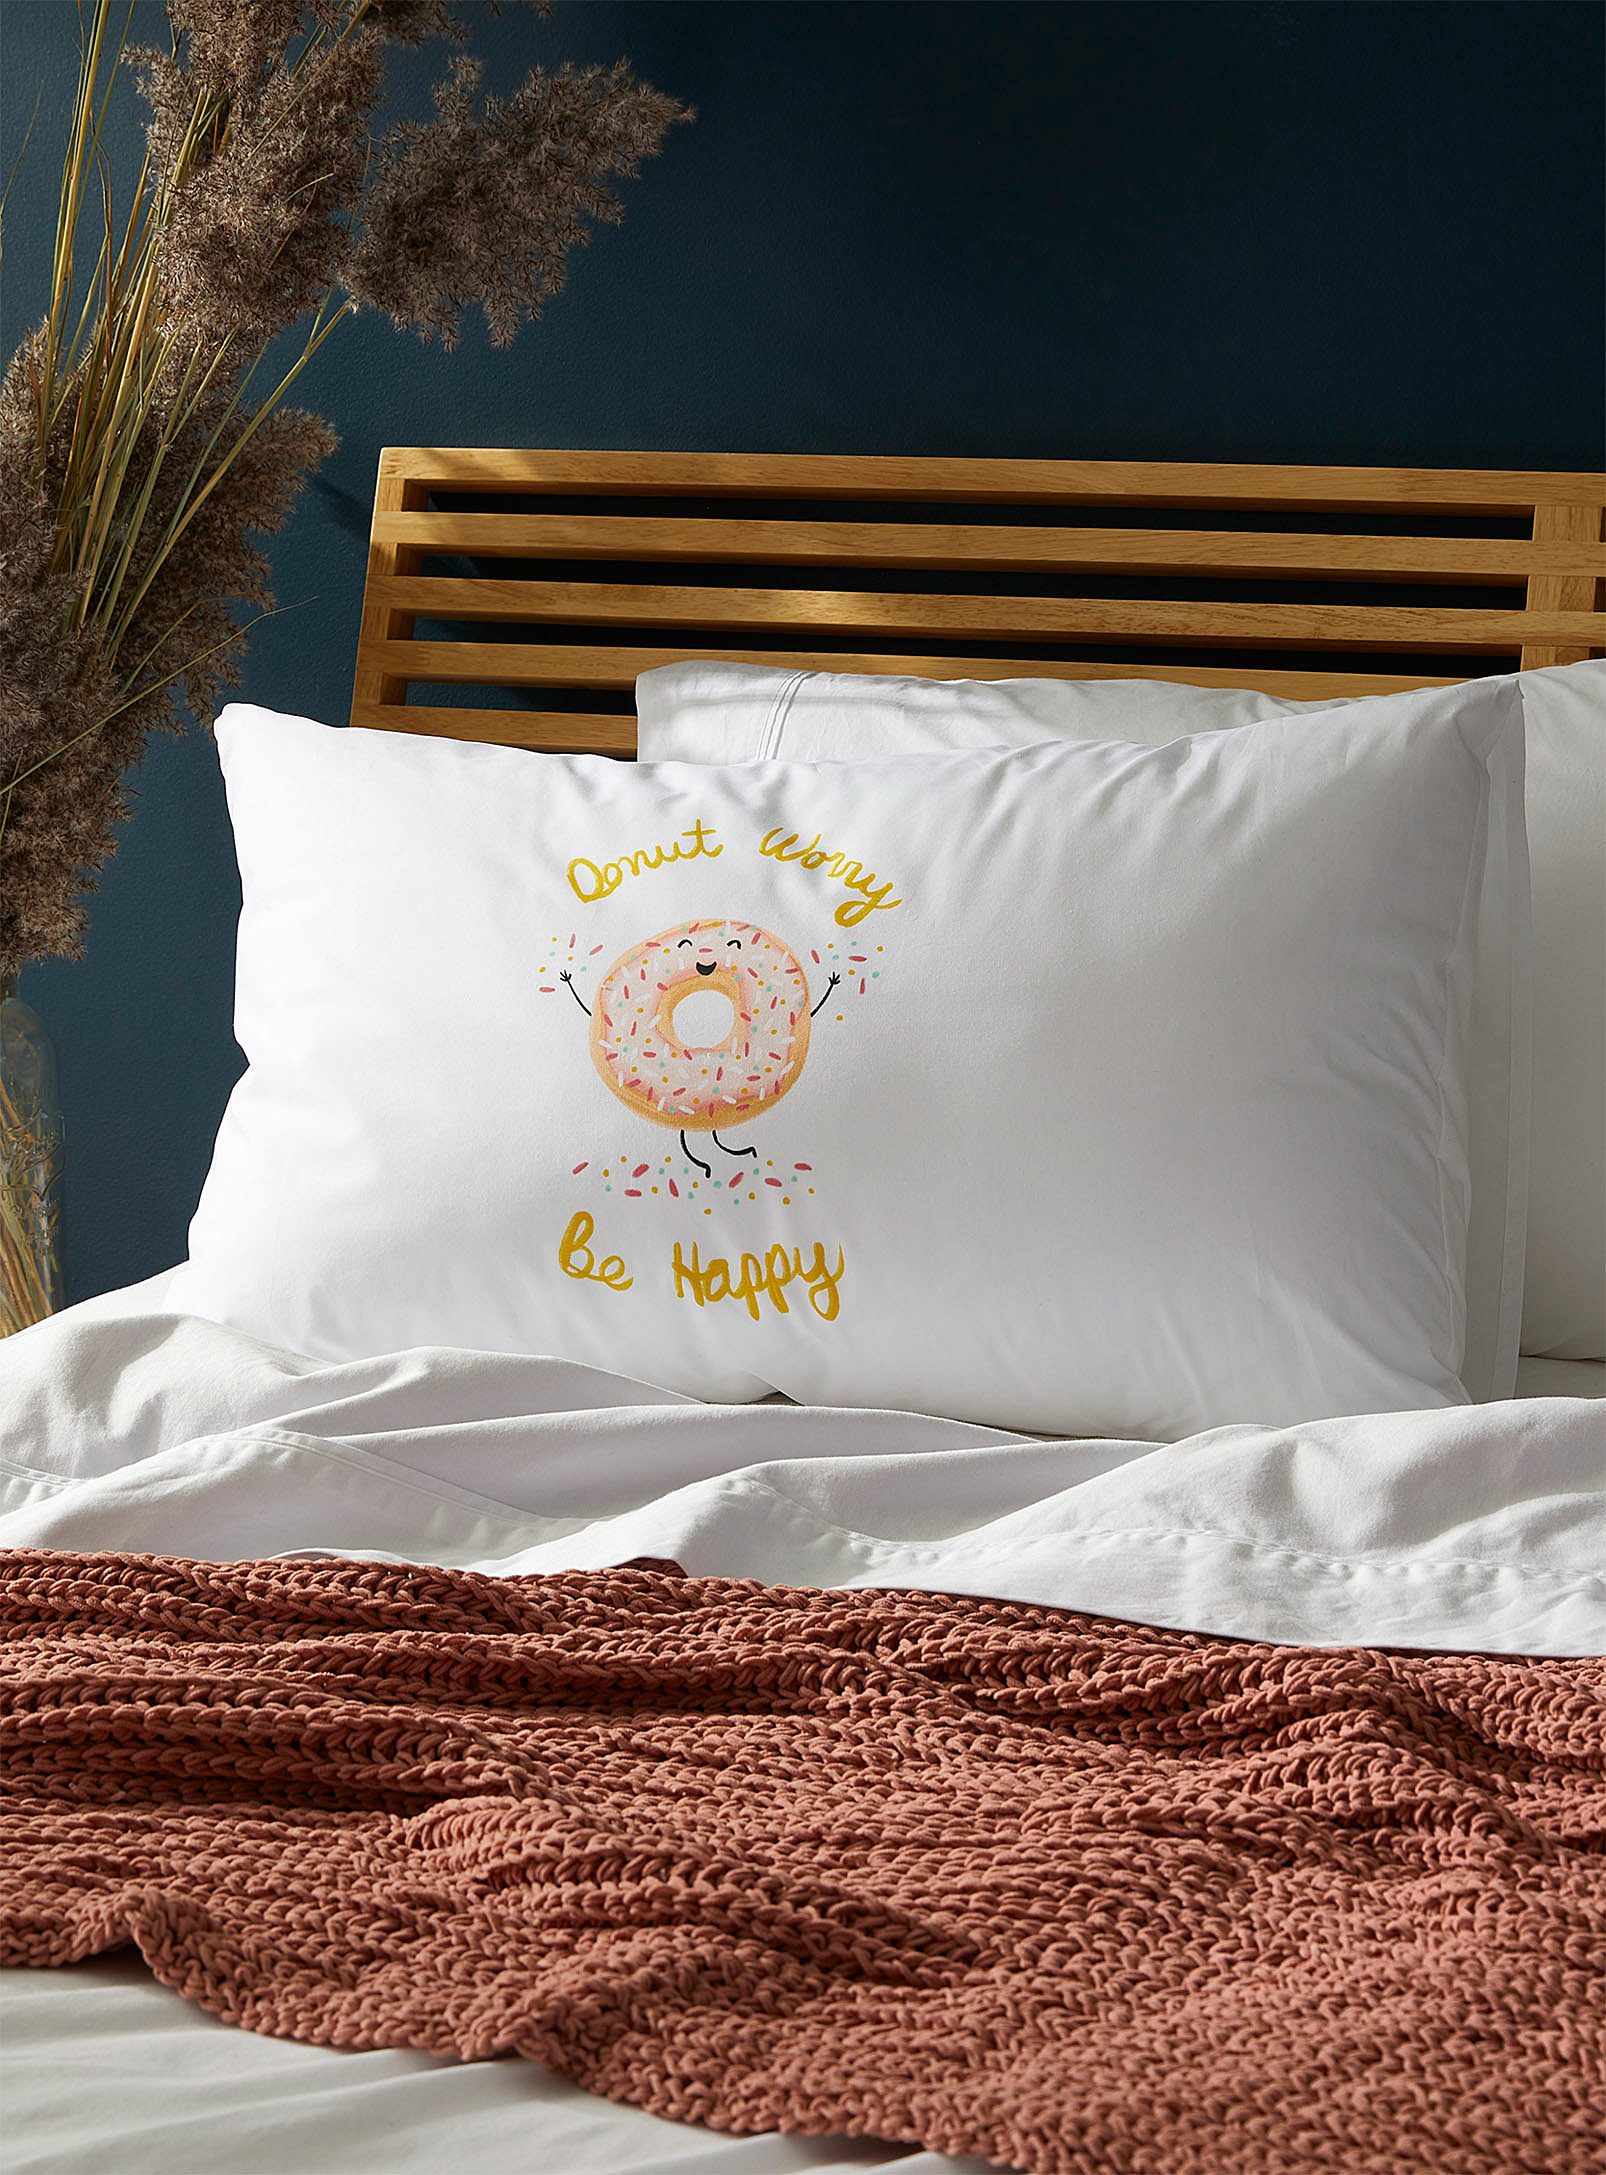 A pillow on a bed that has an illustration of a donut and a message that says donut worry be happy